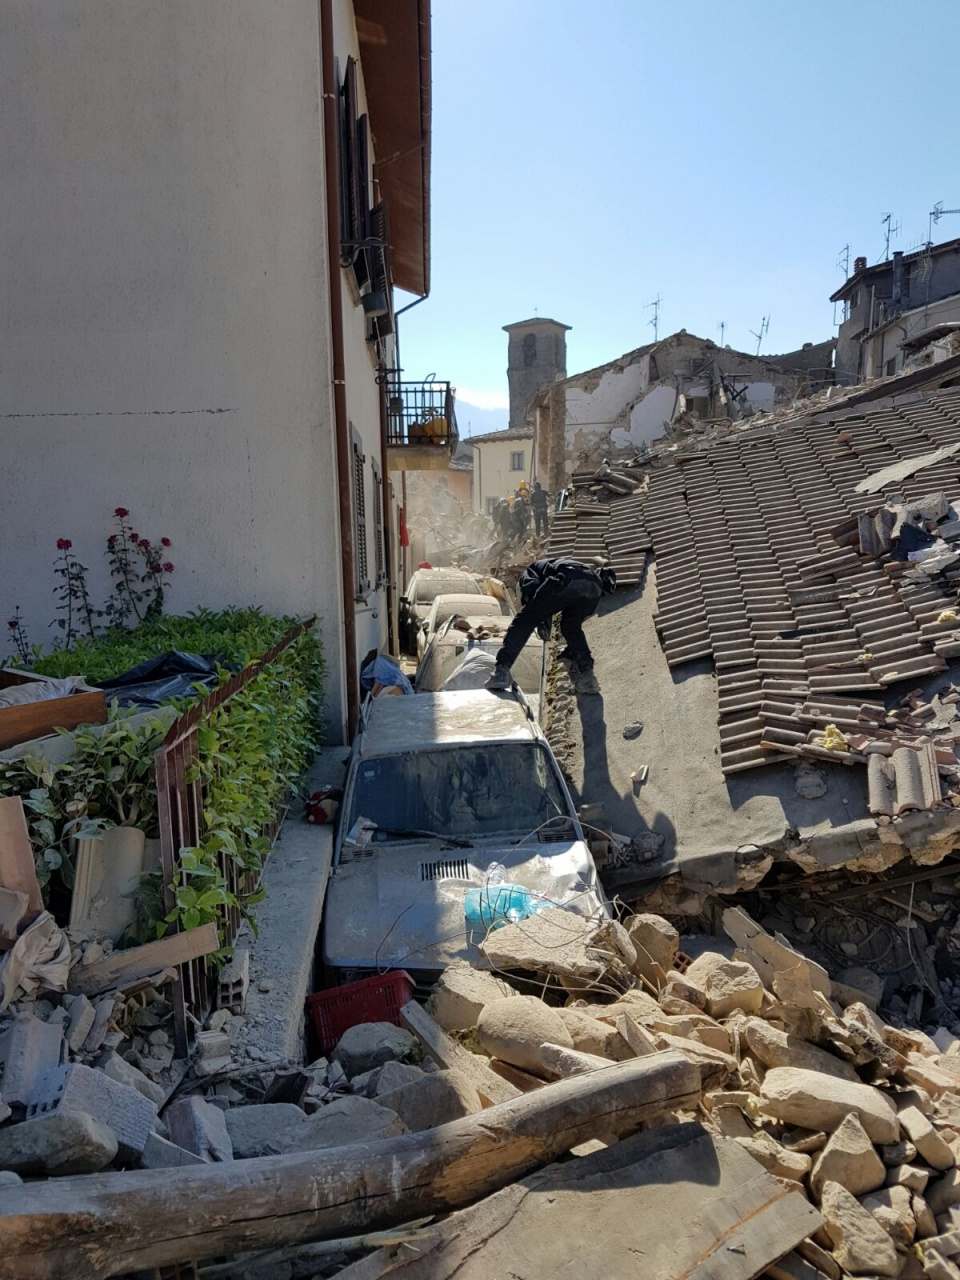 Earthquake in Italy 24 of August 2016